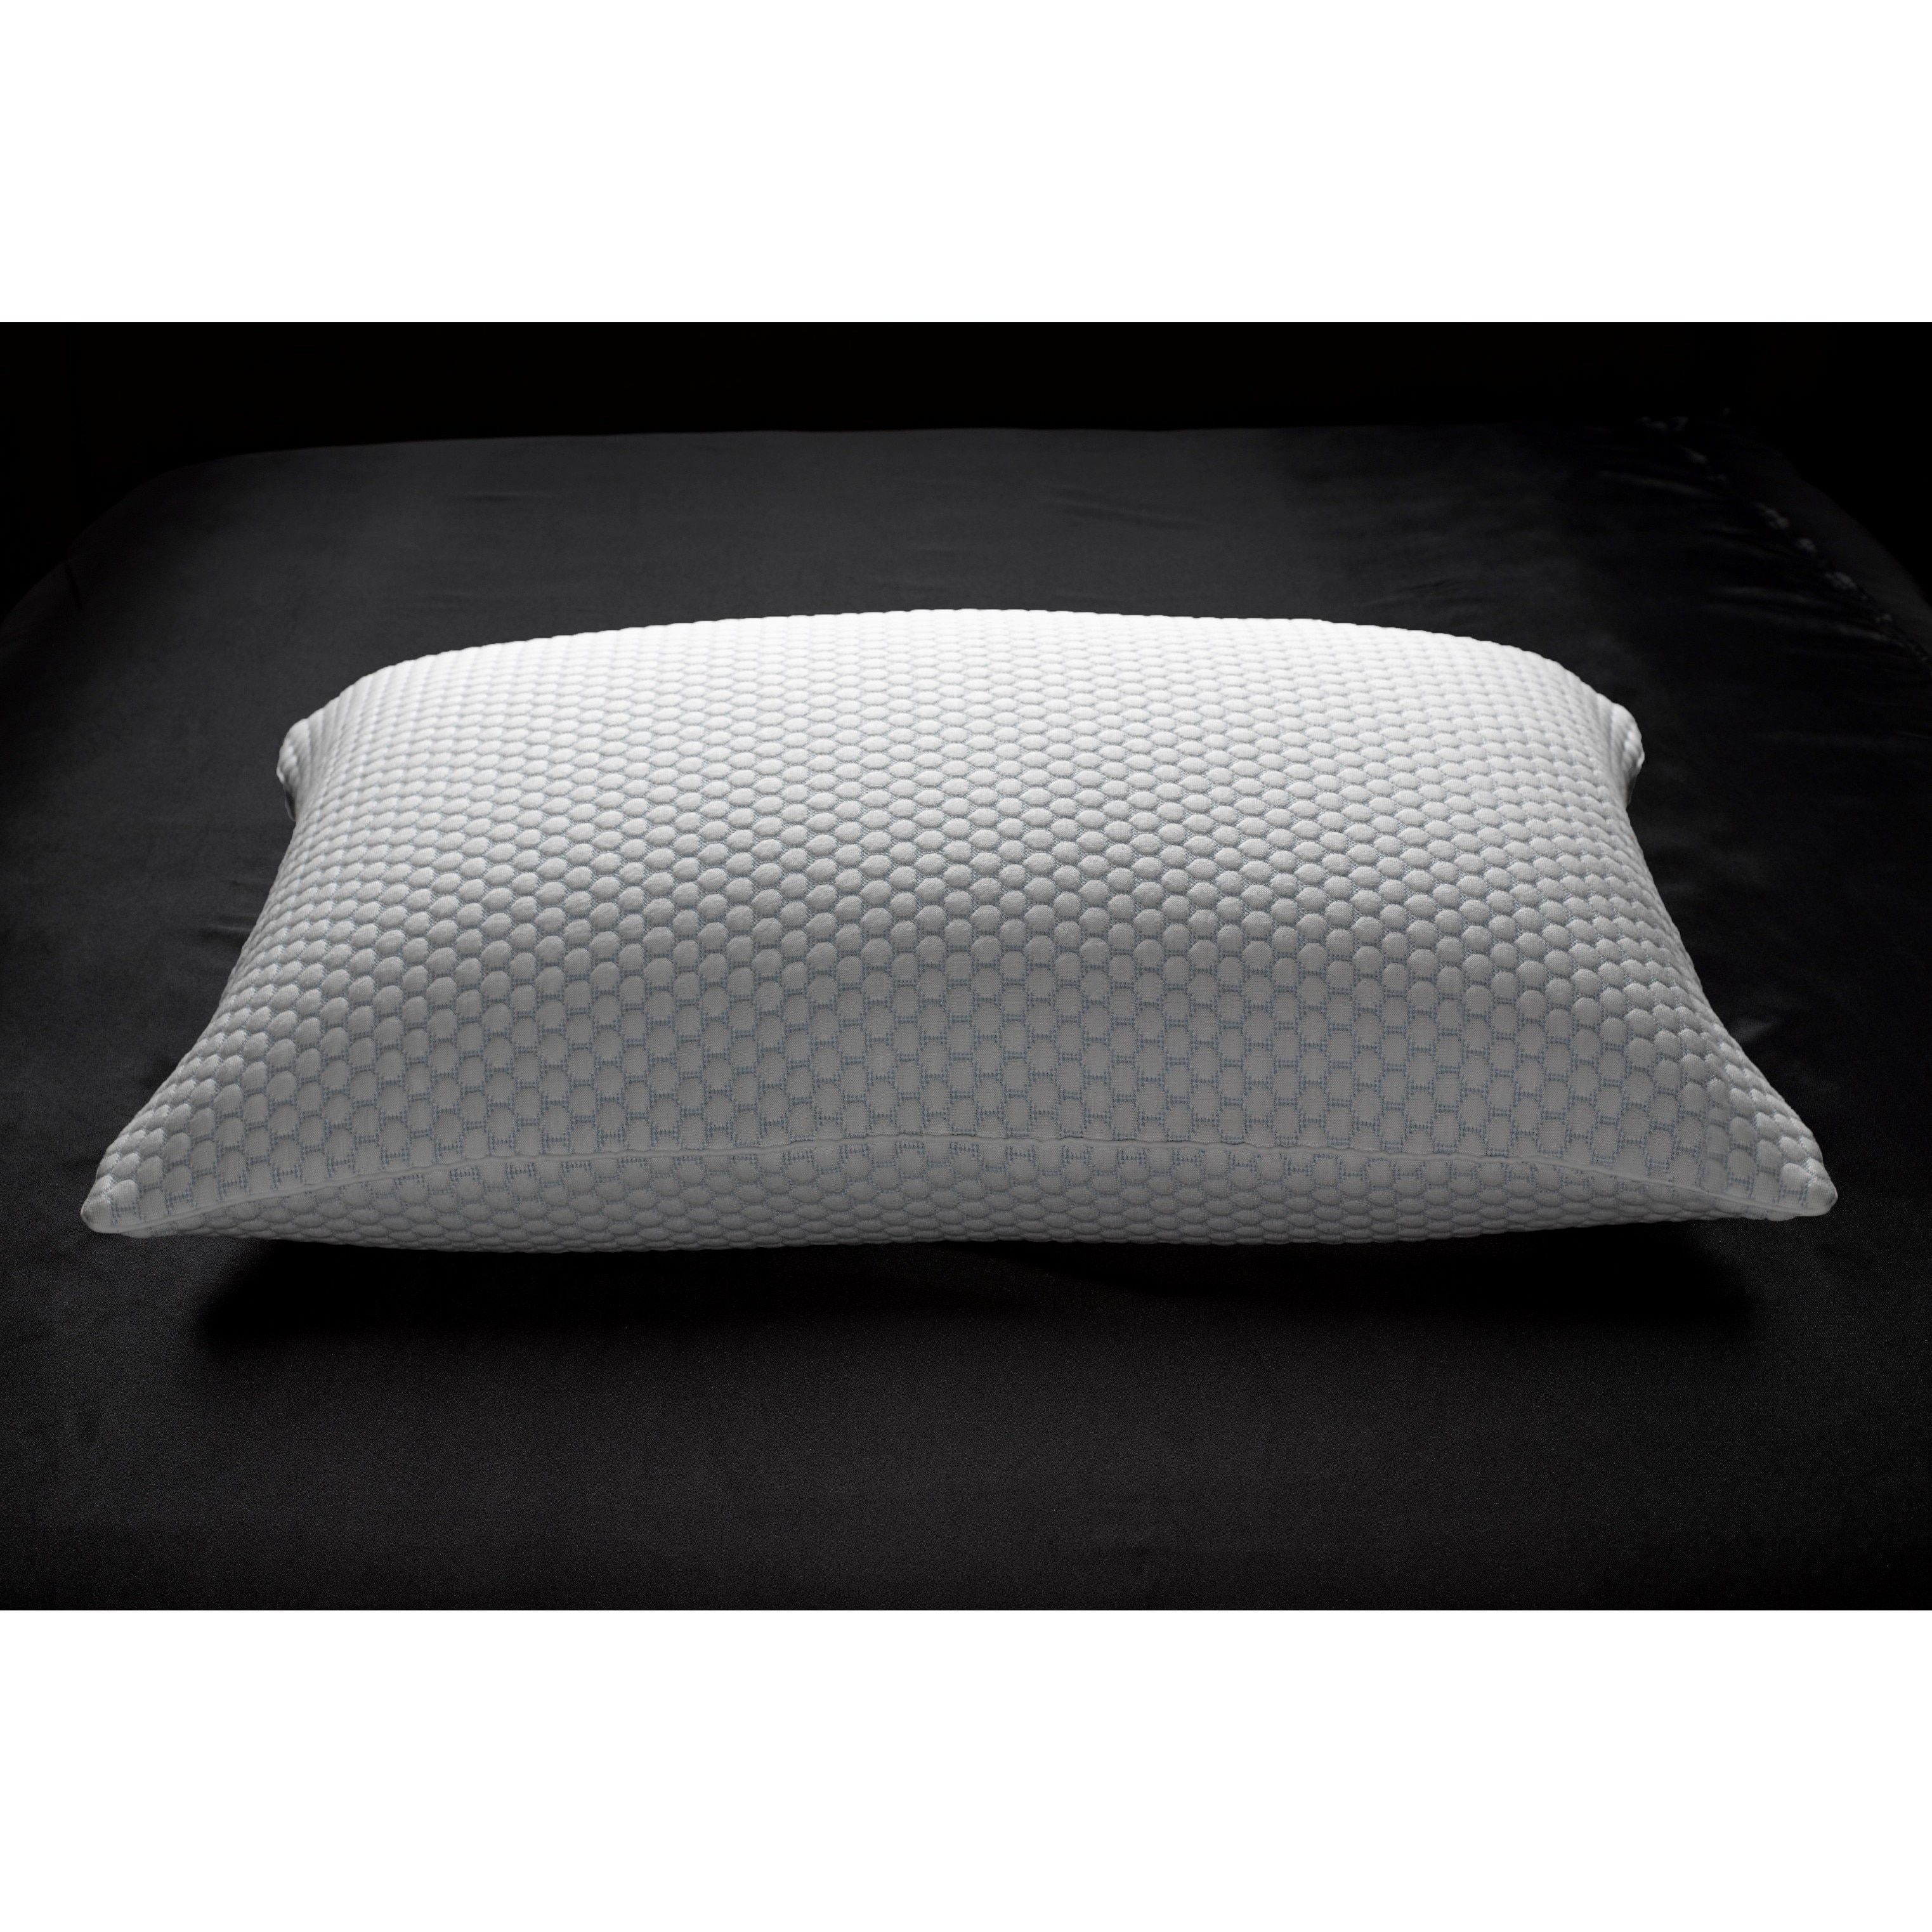 the cool pillows standard comfortable pillow casper supportive bed best by cooling